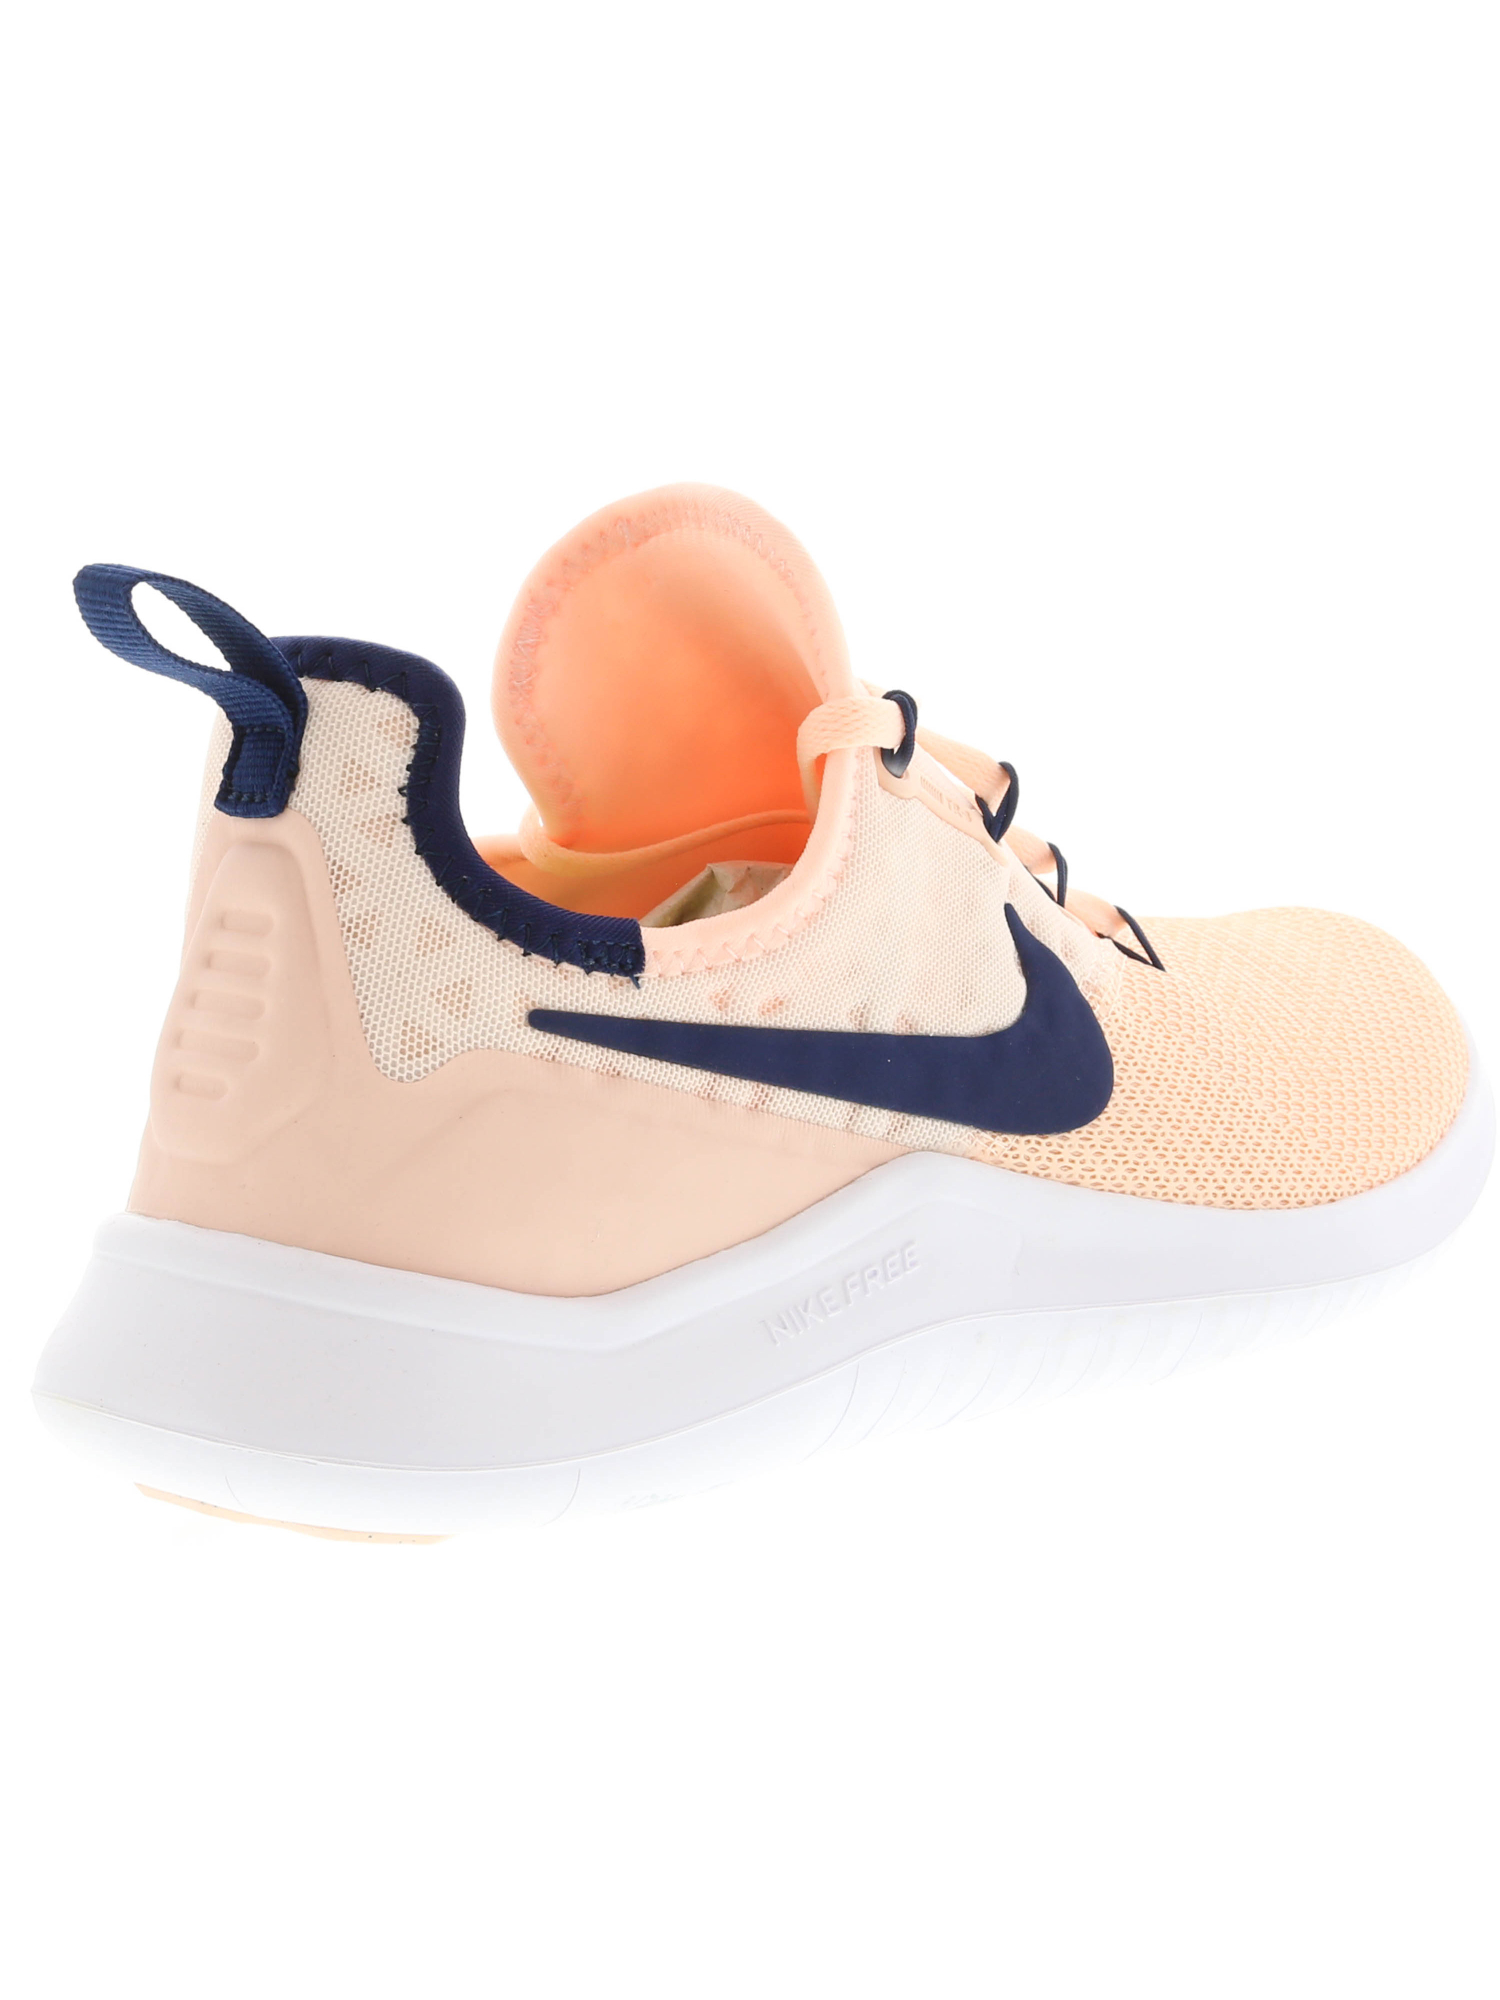 Nike-Women-039-s-Free-Tr-8-Ankle-High-Fabric-Training-Shoes